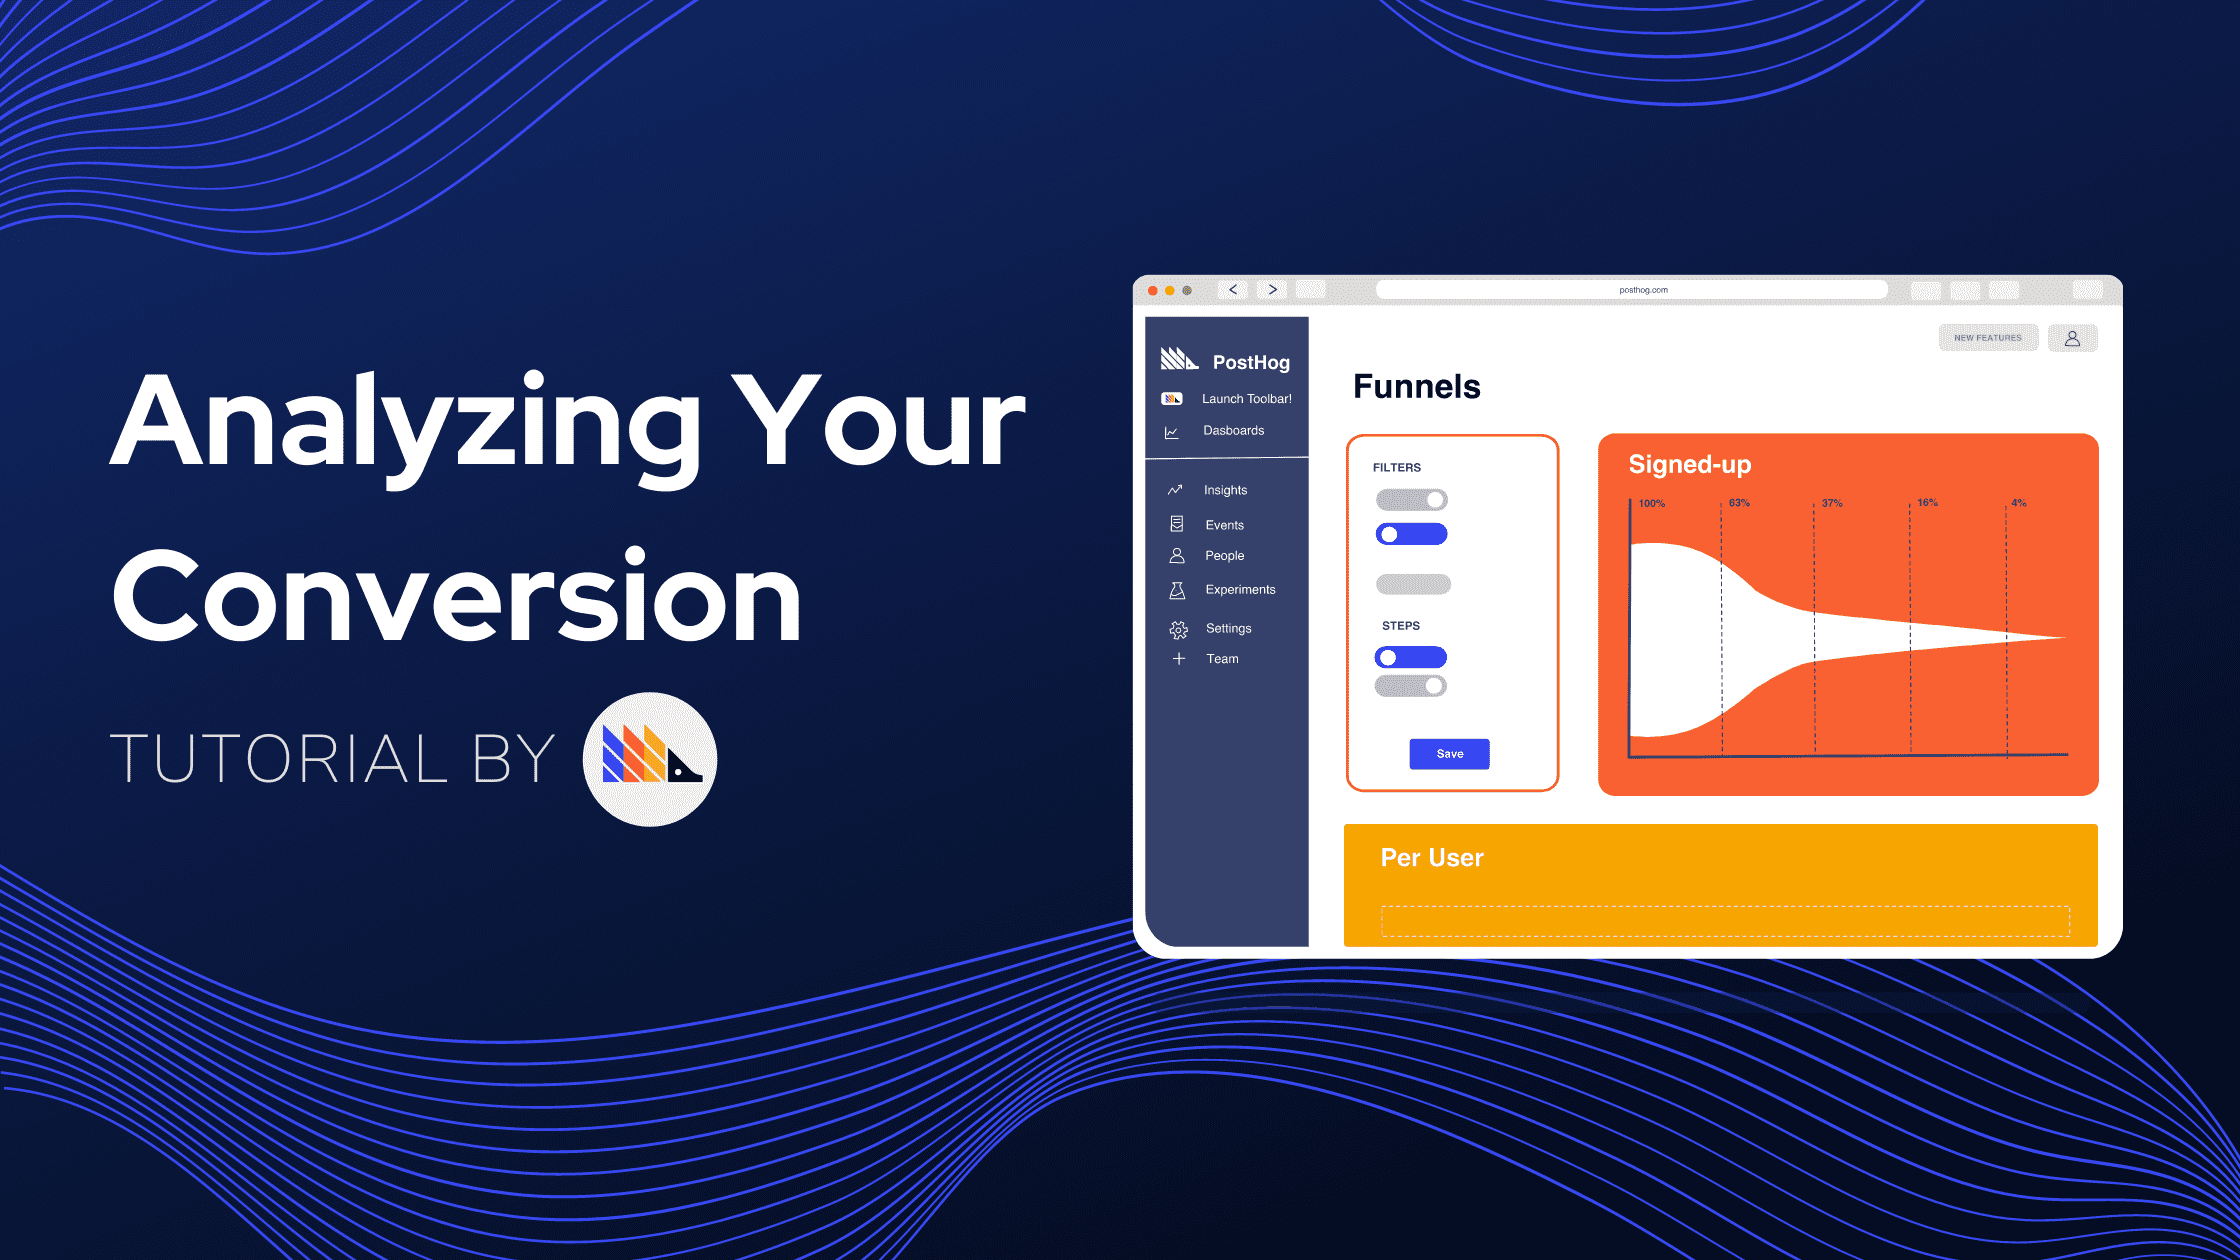 Analyzing your conversion with Funnels